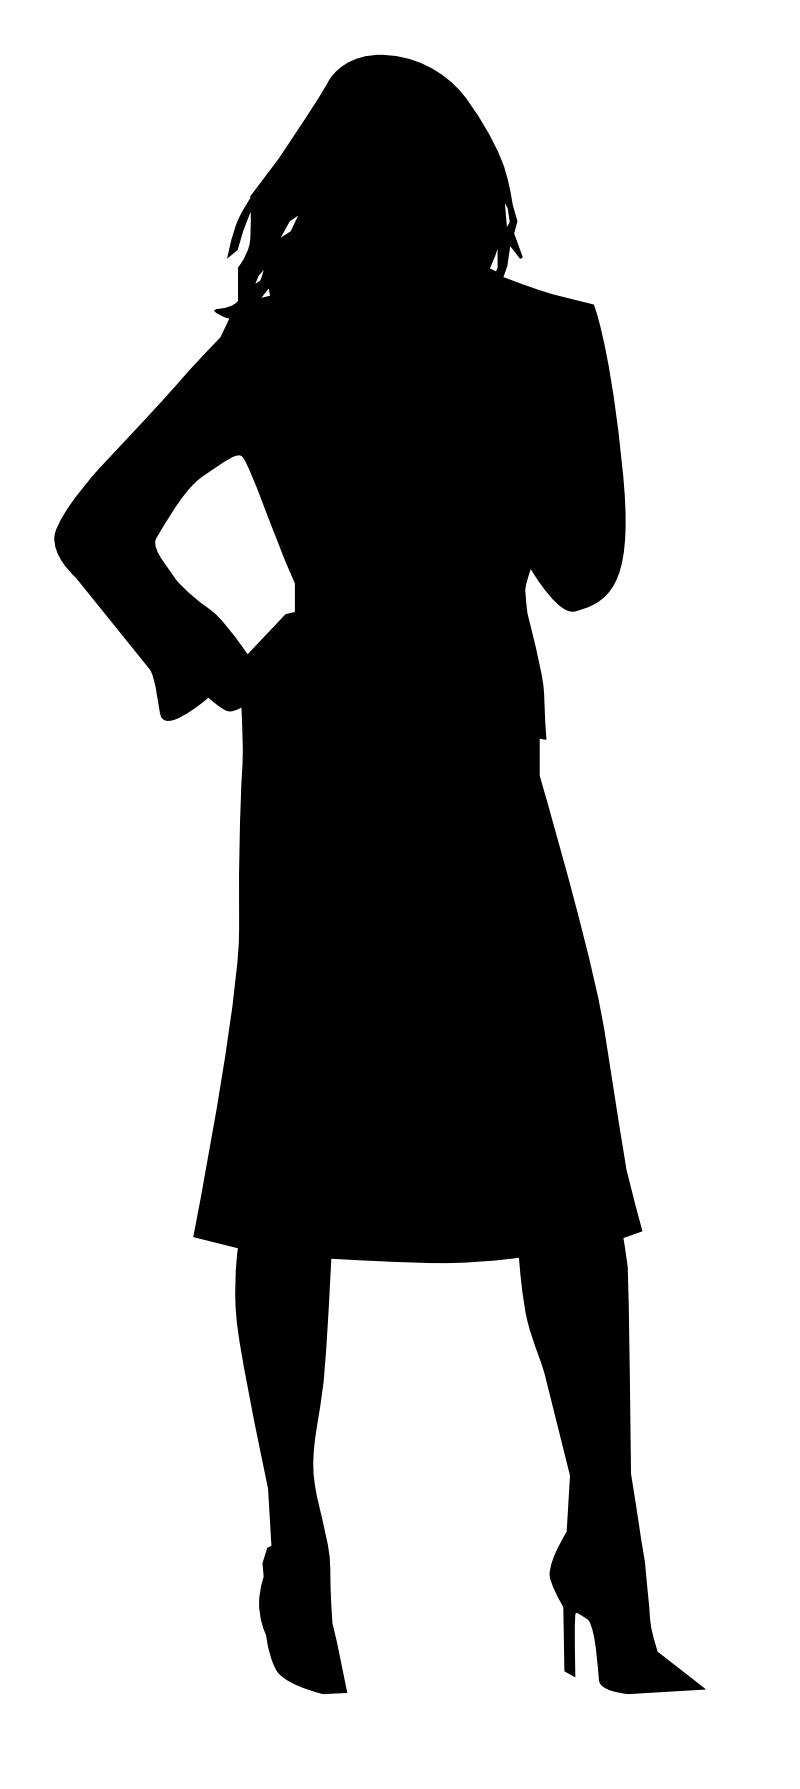 Cinderella silhouette outline at. Clipart guitar woman